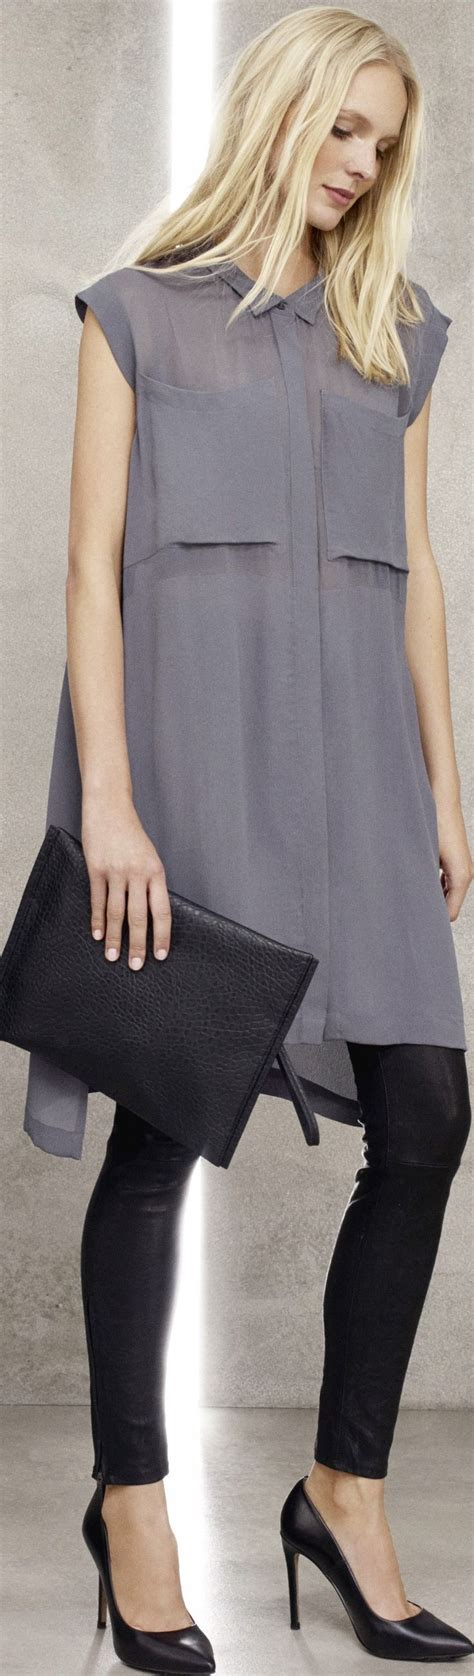 178 best images about * WINTER FASHION for WOMEN OVER 40 50 on Pinterest | Coats Fall fashion ...